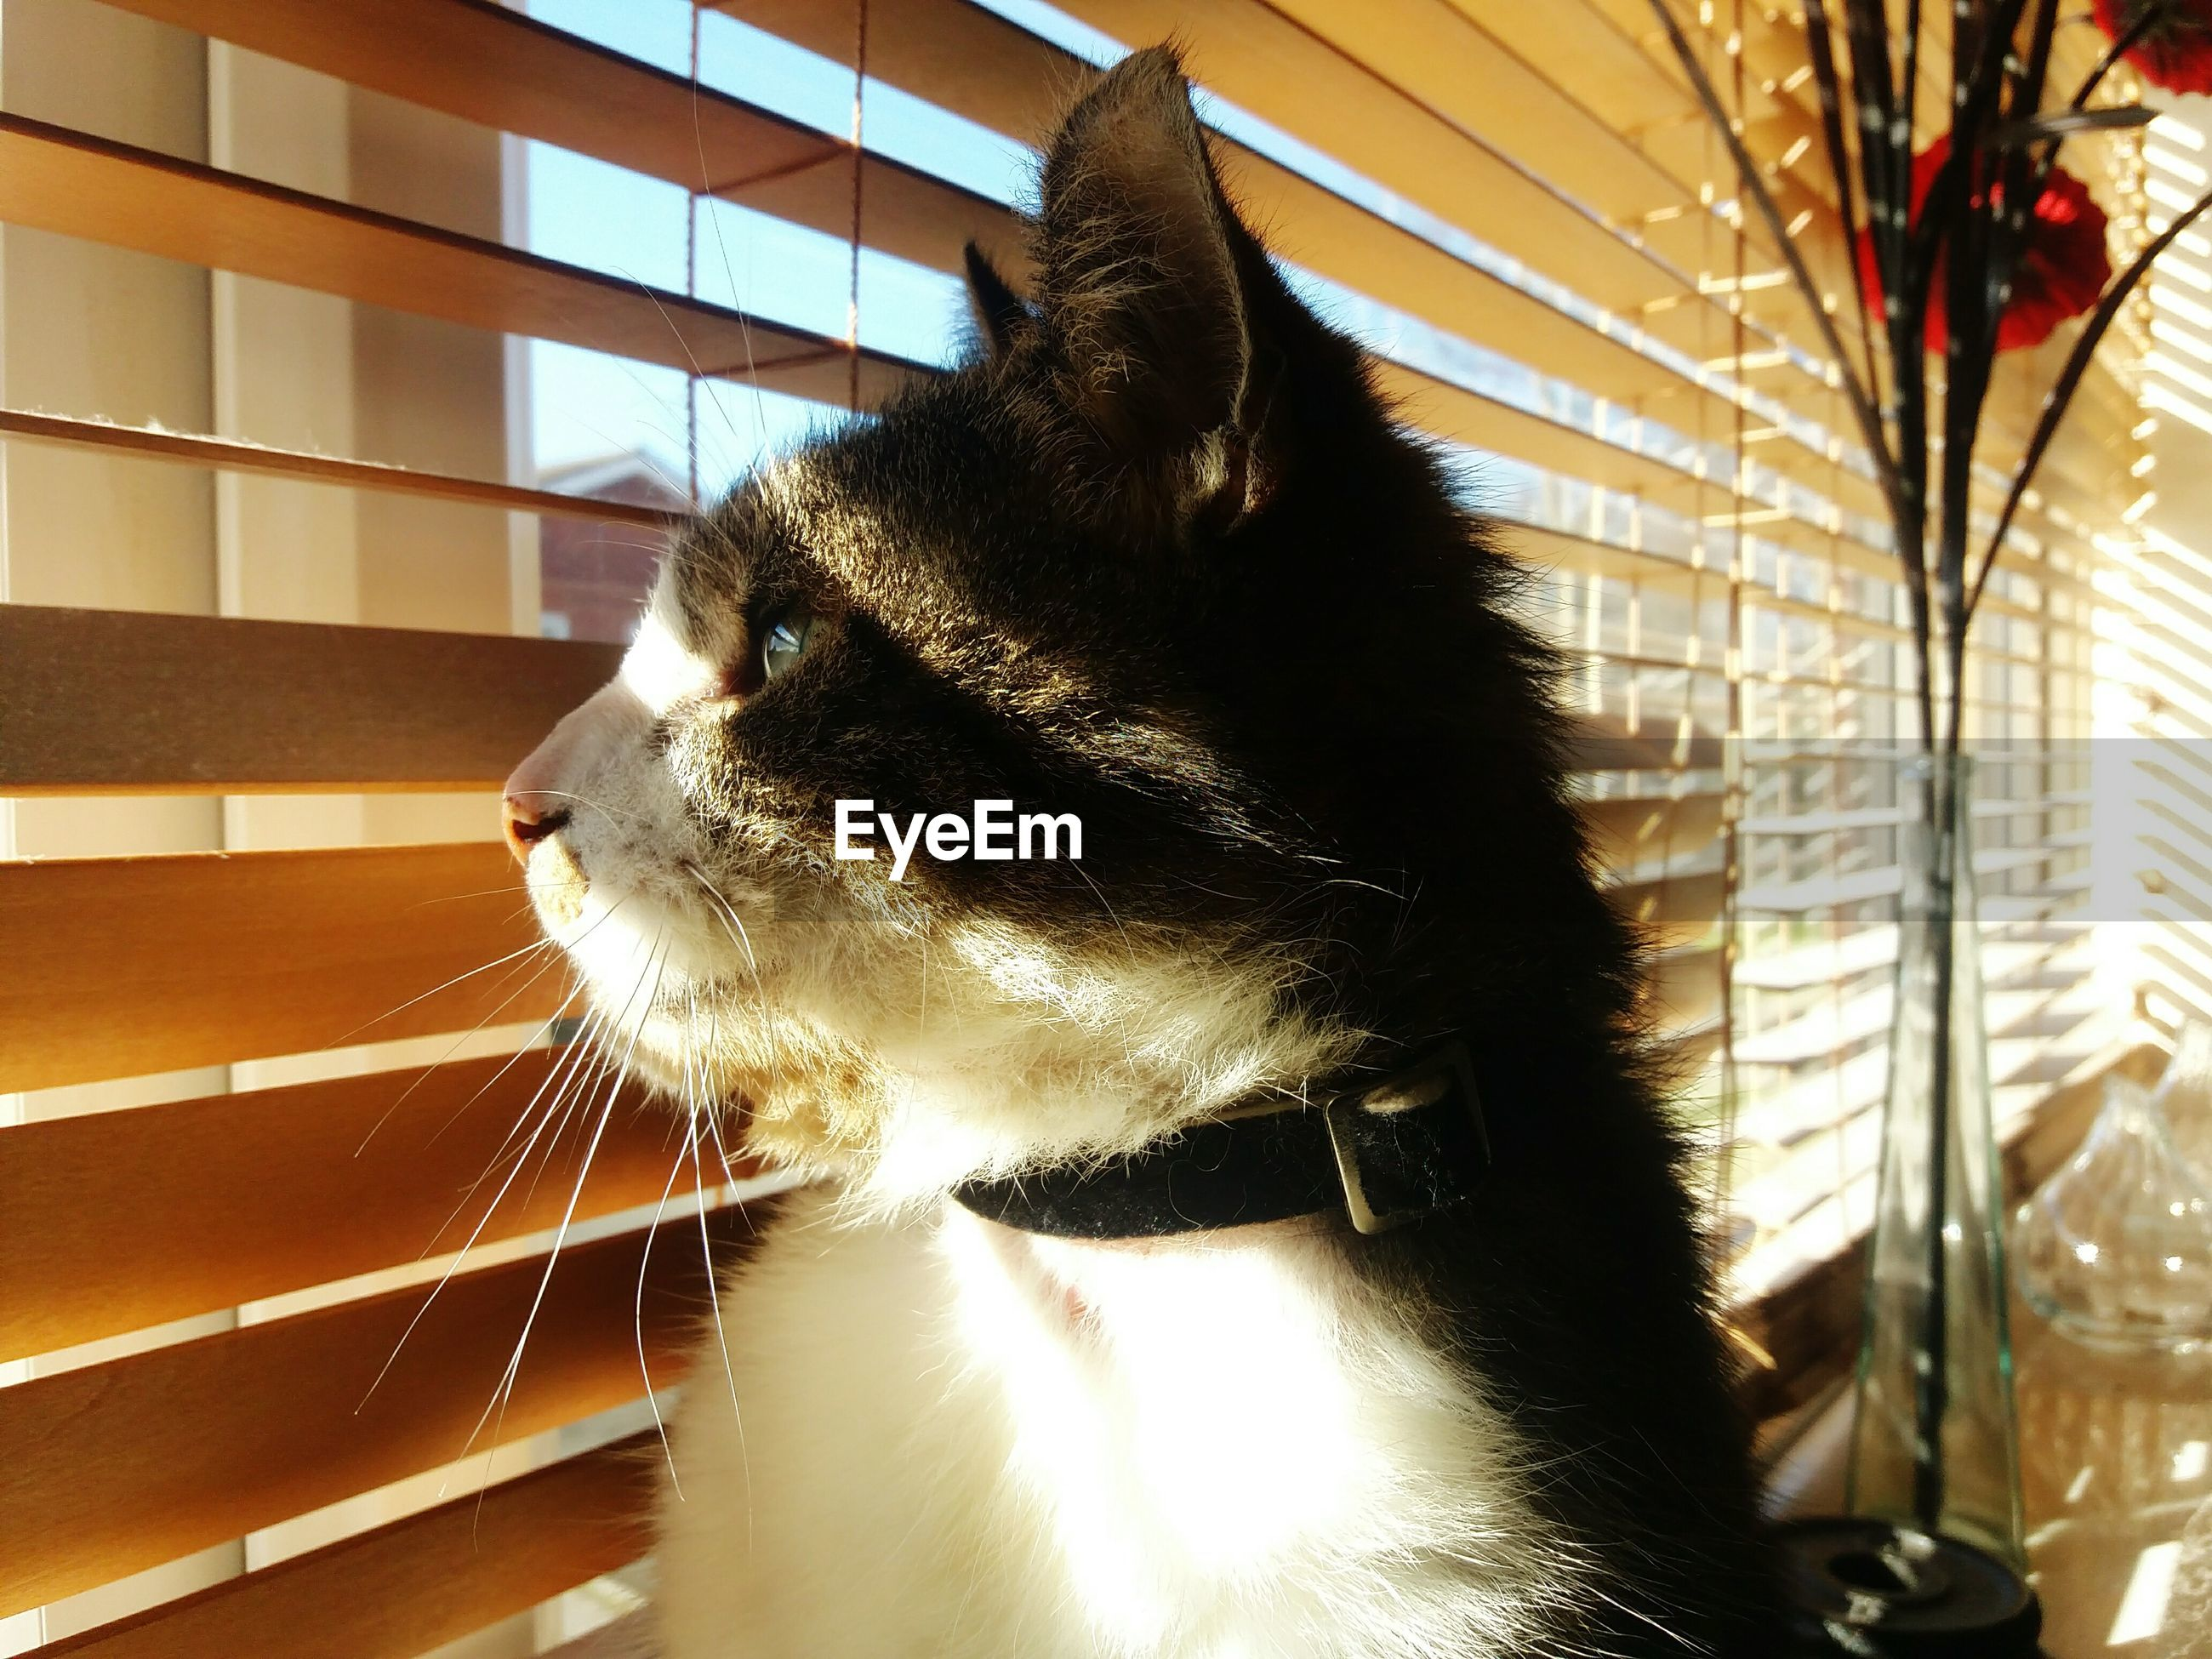 Cat looking though window at home